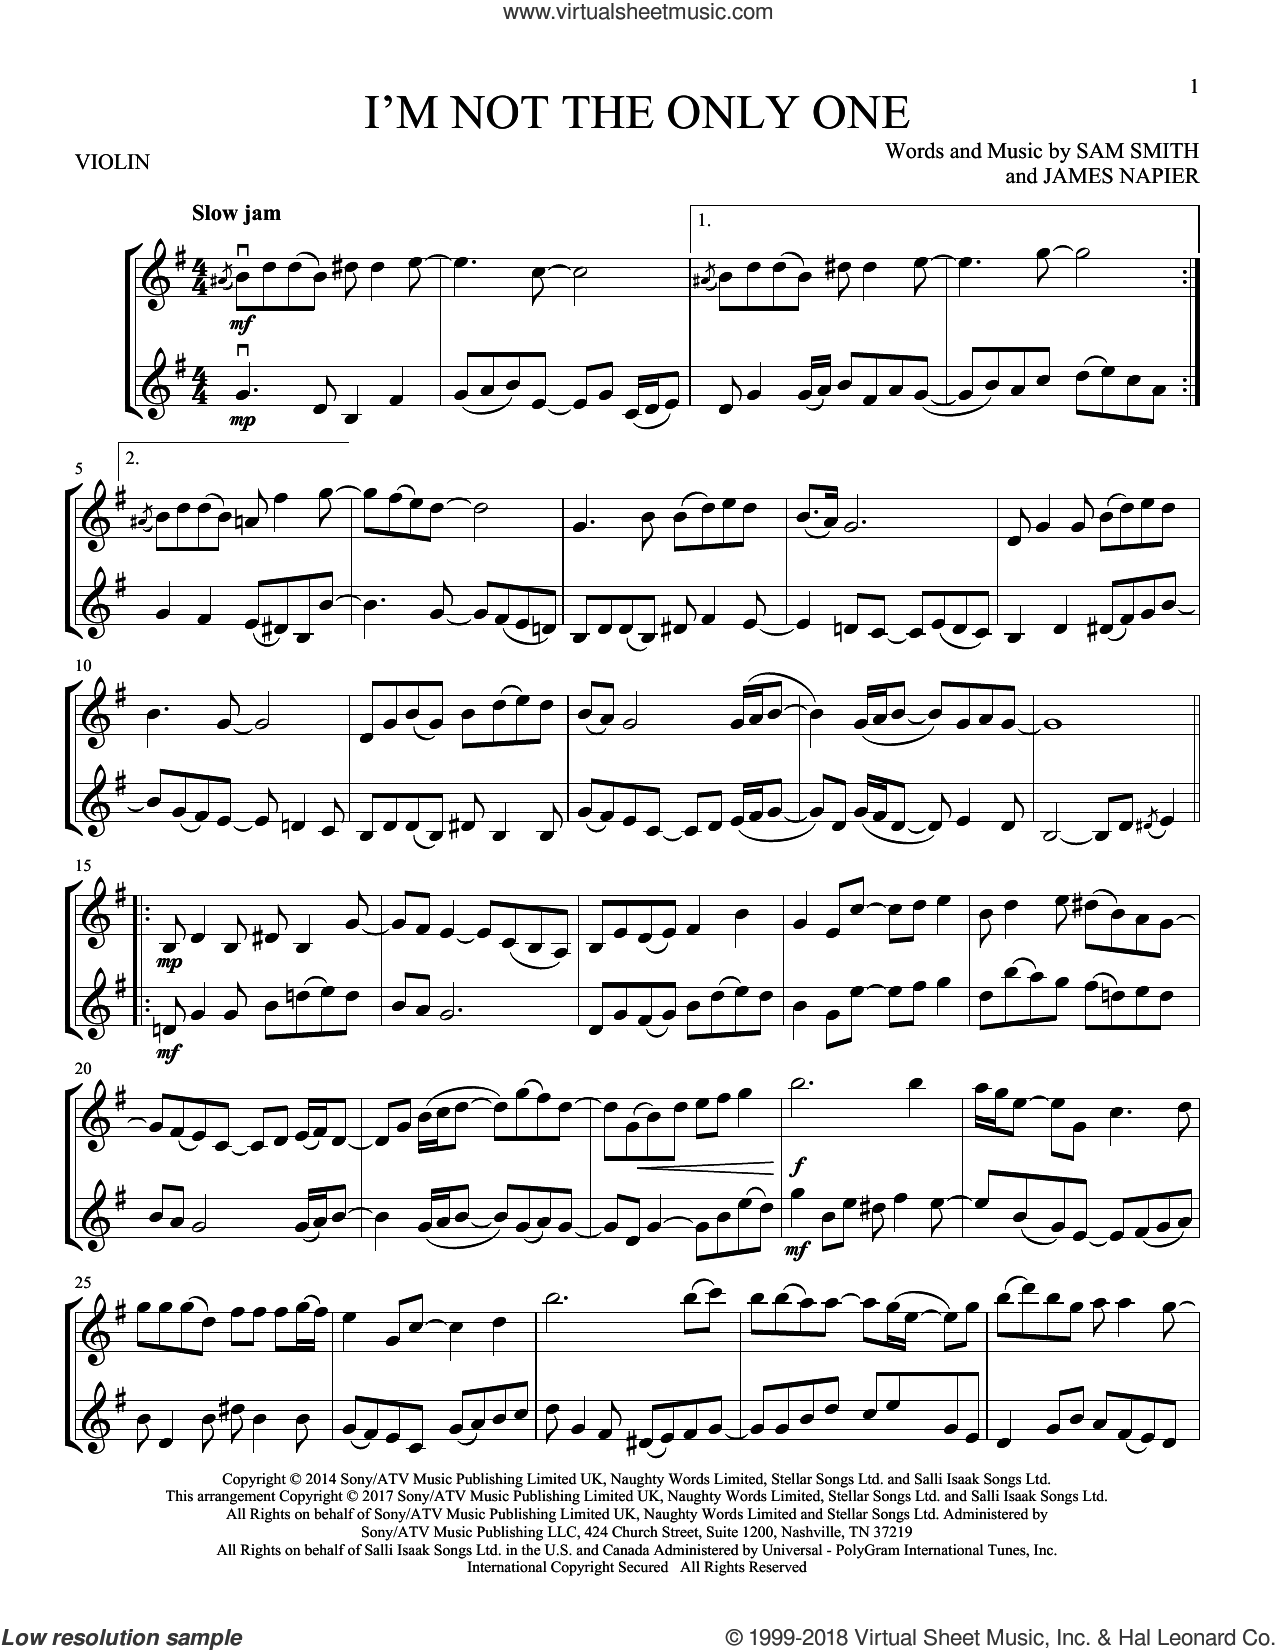 I'm Not The Only One sheet music for two violins (duets, violin duets) by Sam Smith and James Napier, intermediate skill level